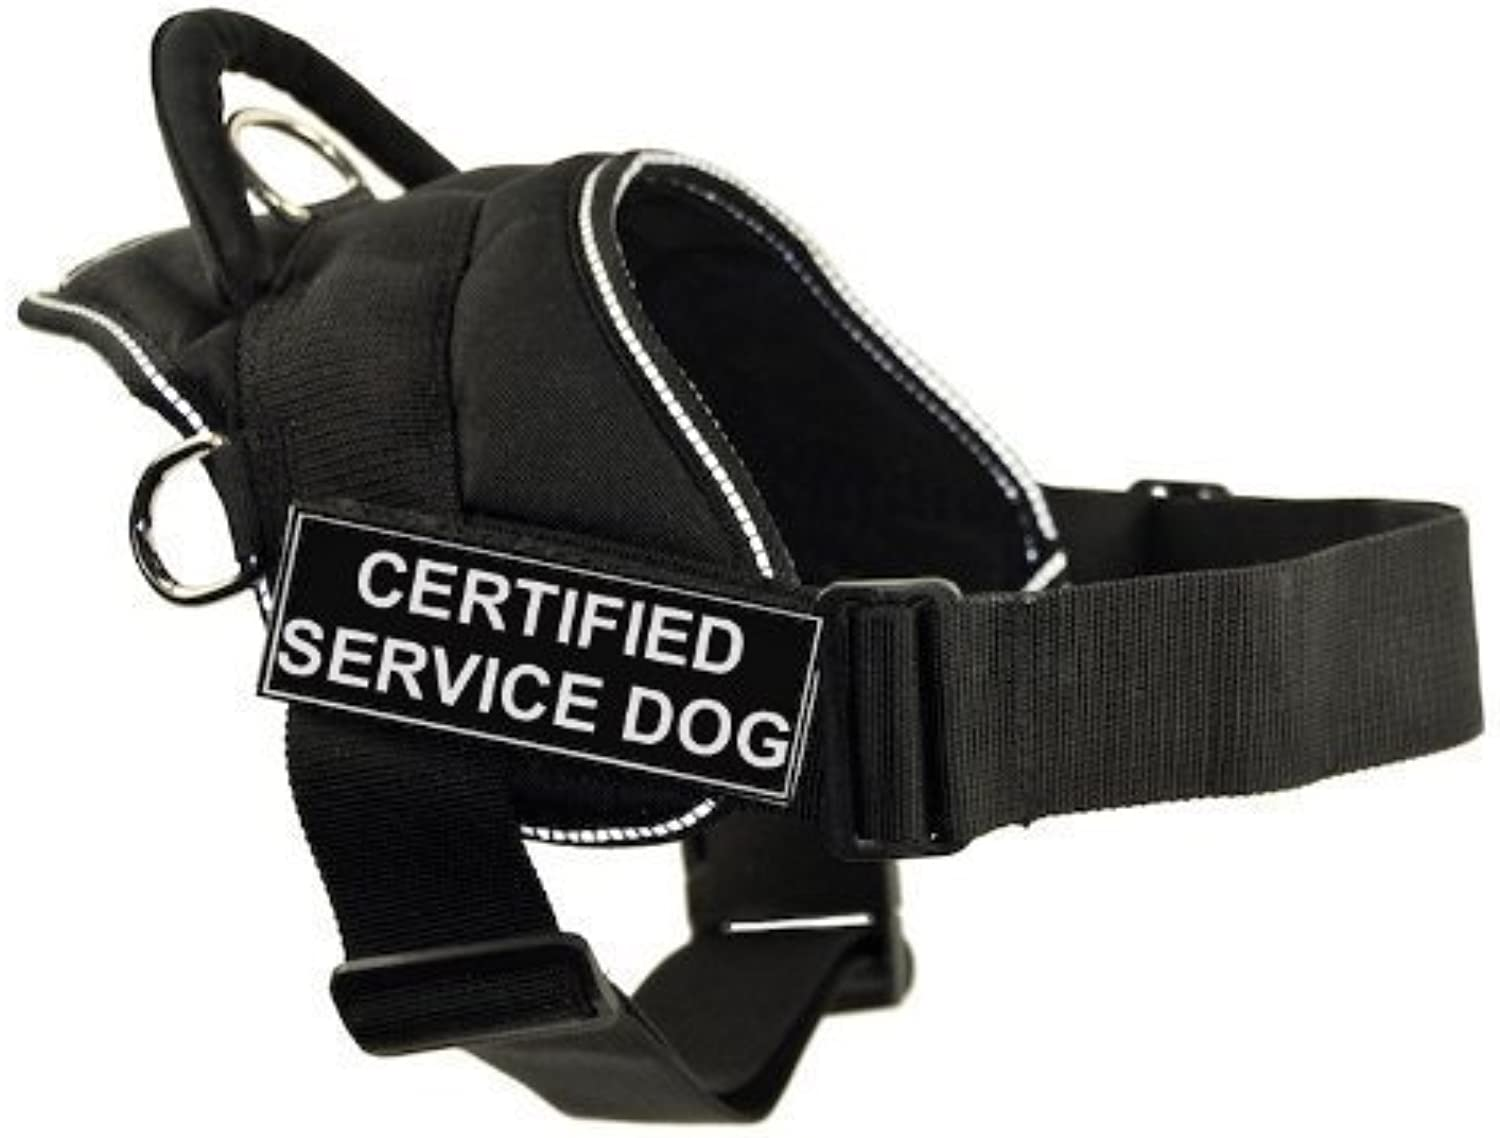 Dean & Tyler DT Fun Works Harness, Certified Service Dog, Black With Reflective Trim, Large  Fits Girth Size  32Inch to 42Inch